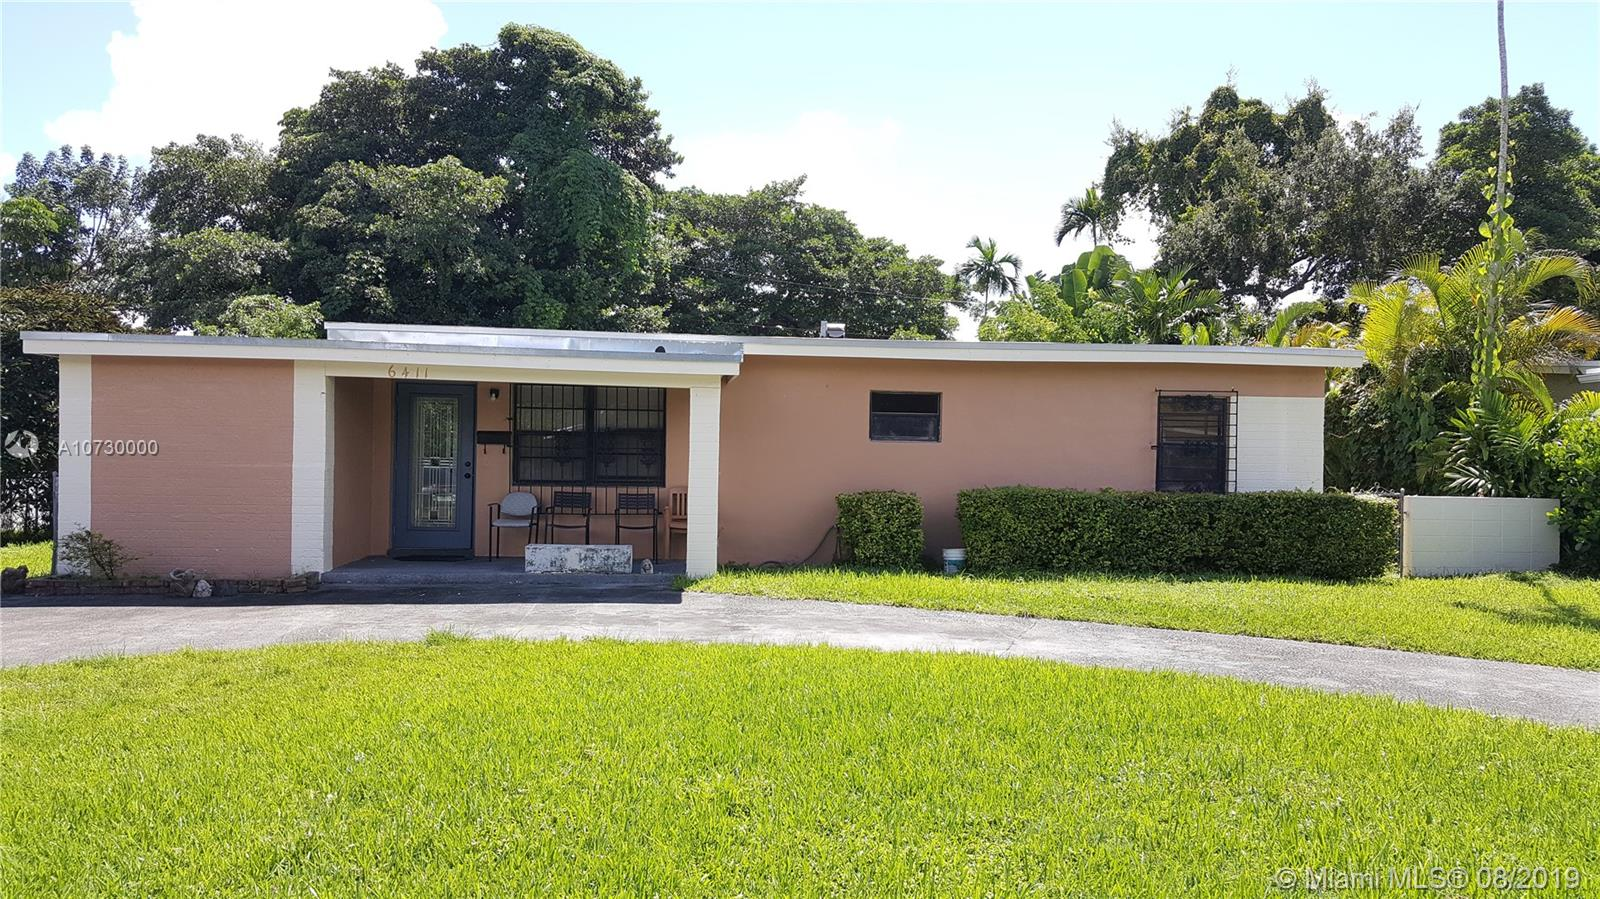 Estate sale in South Miami has been approved by the court. This 3 bedroom 2 baths needs some updating, family room, 2 year old roof, nice size lot of over 10,000 sq ft with room for an addition and a pool. The seller is taking the chandelier in the dining area.